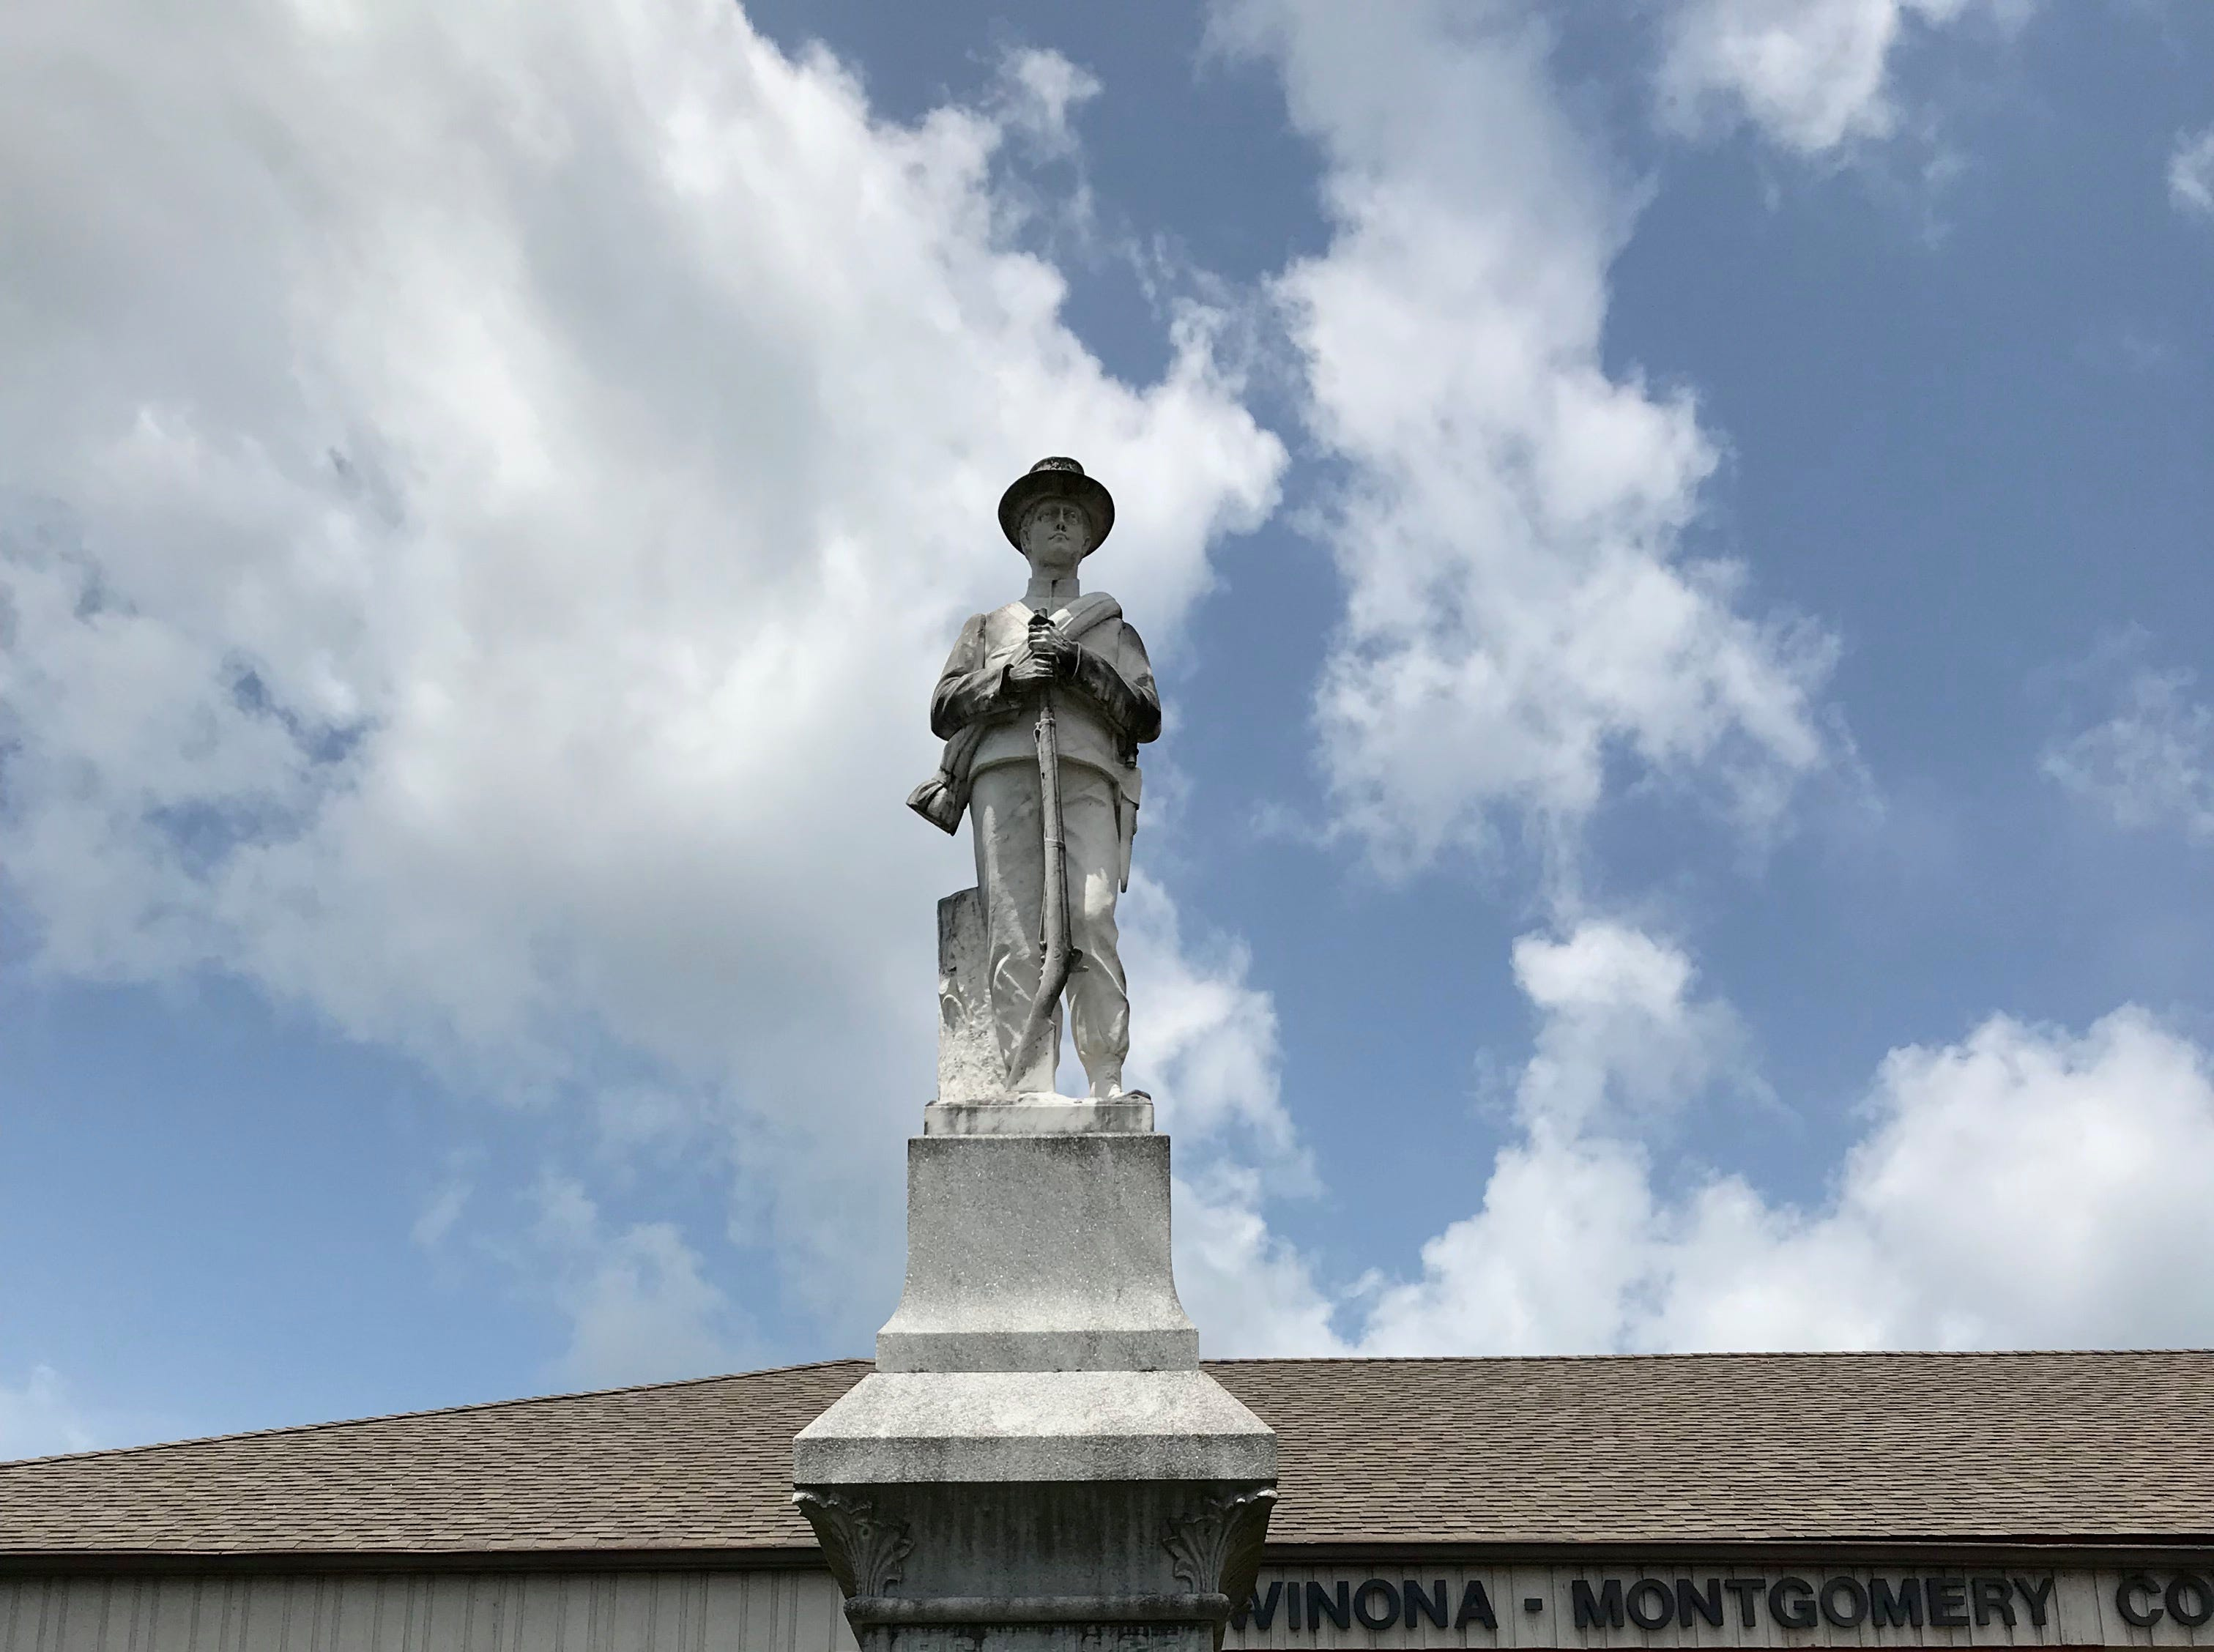 A confederate soldier memorial stands outside the town of Winona's library. The library was built on the site of the former courthouse. Thursday, July 19, 2018.